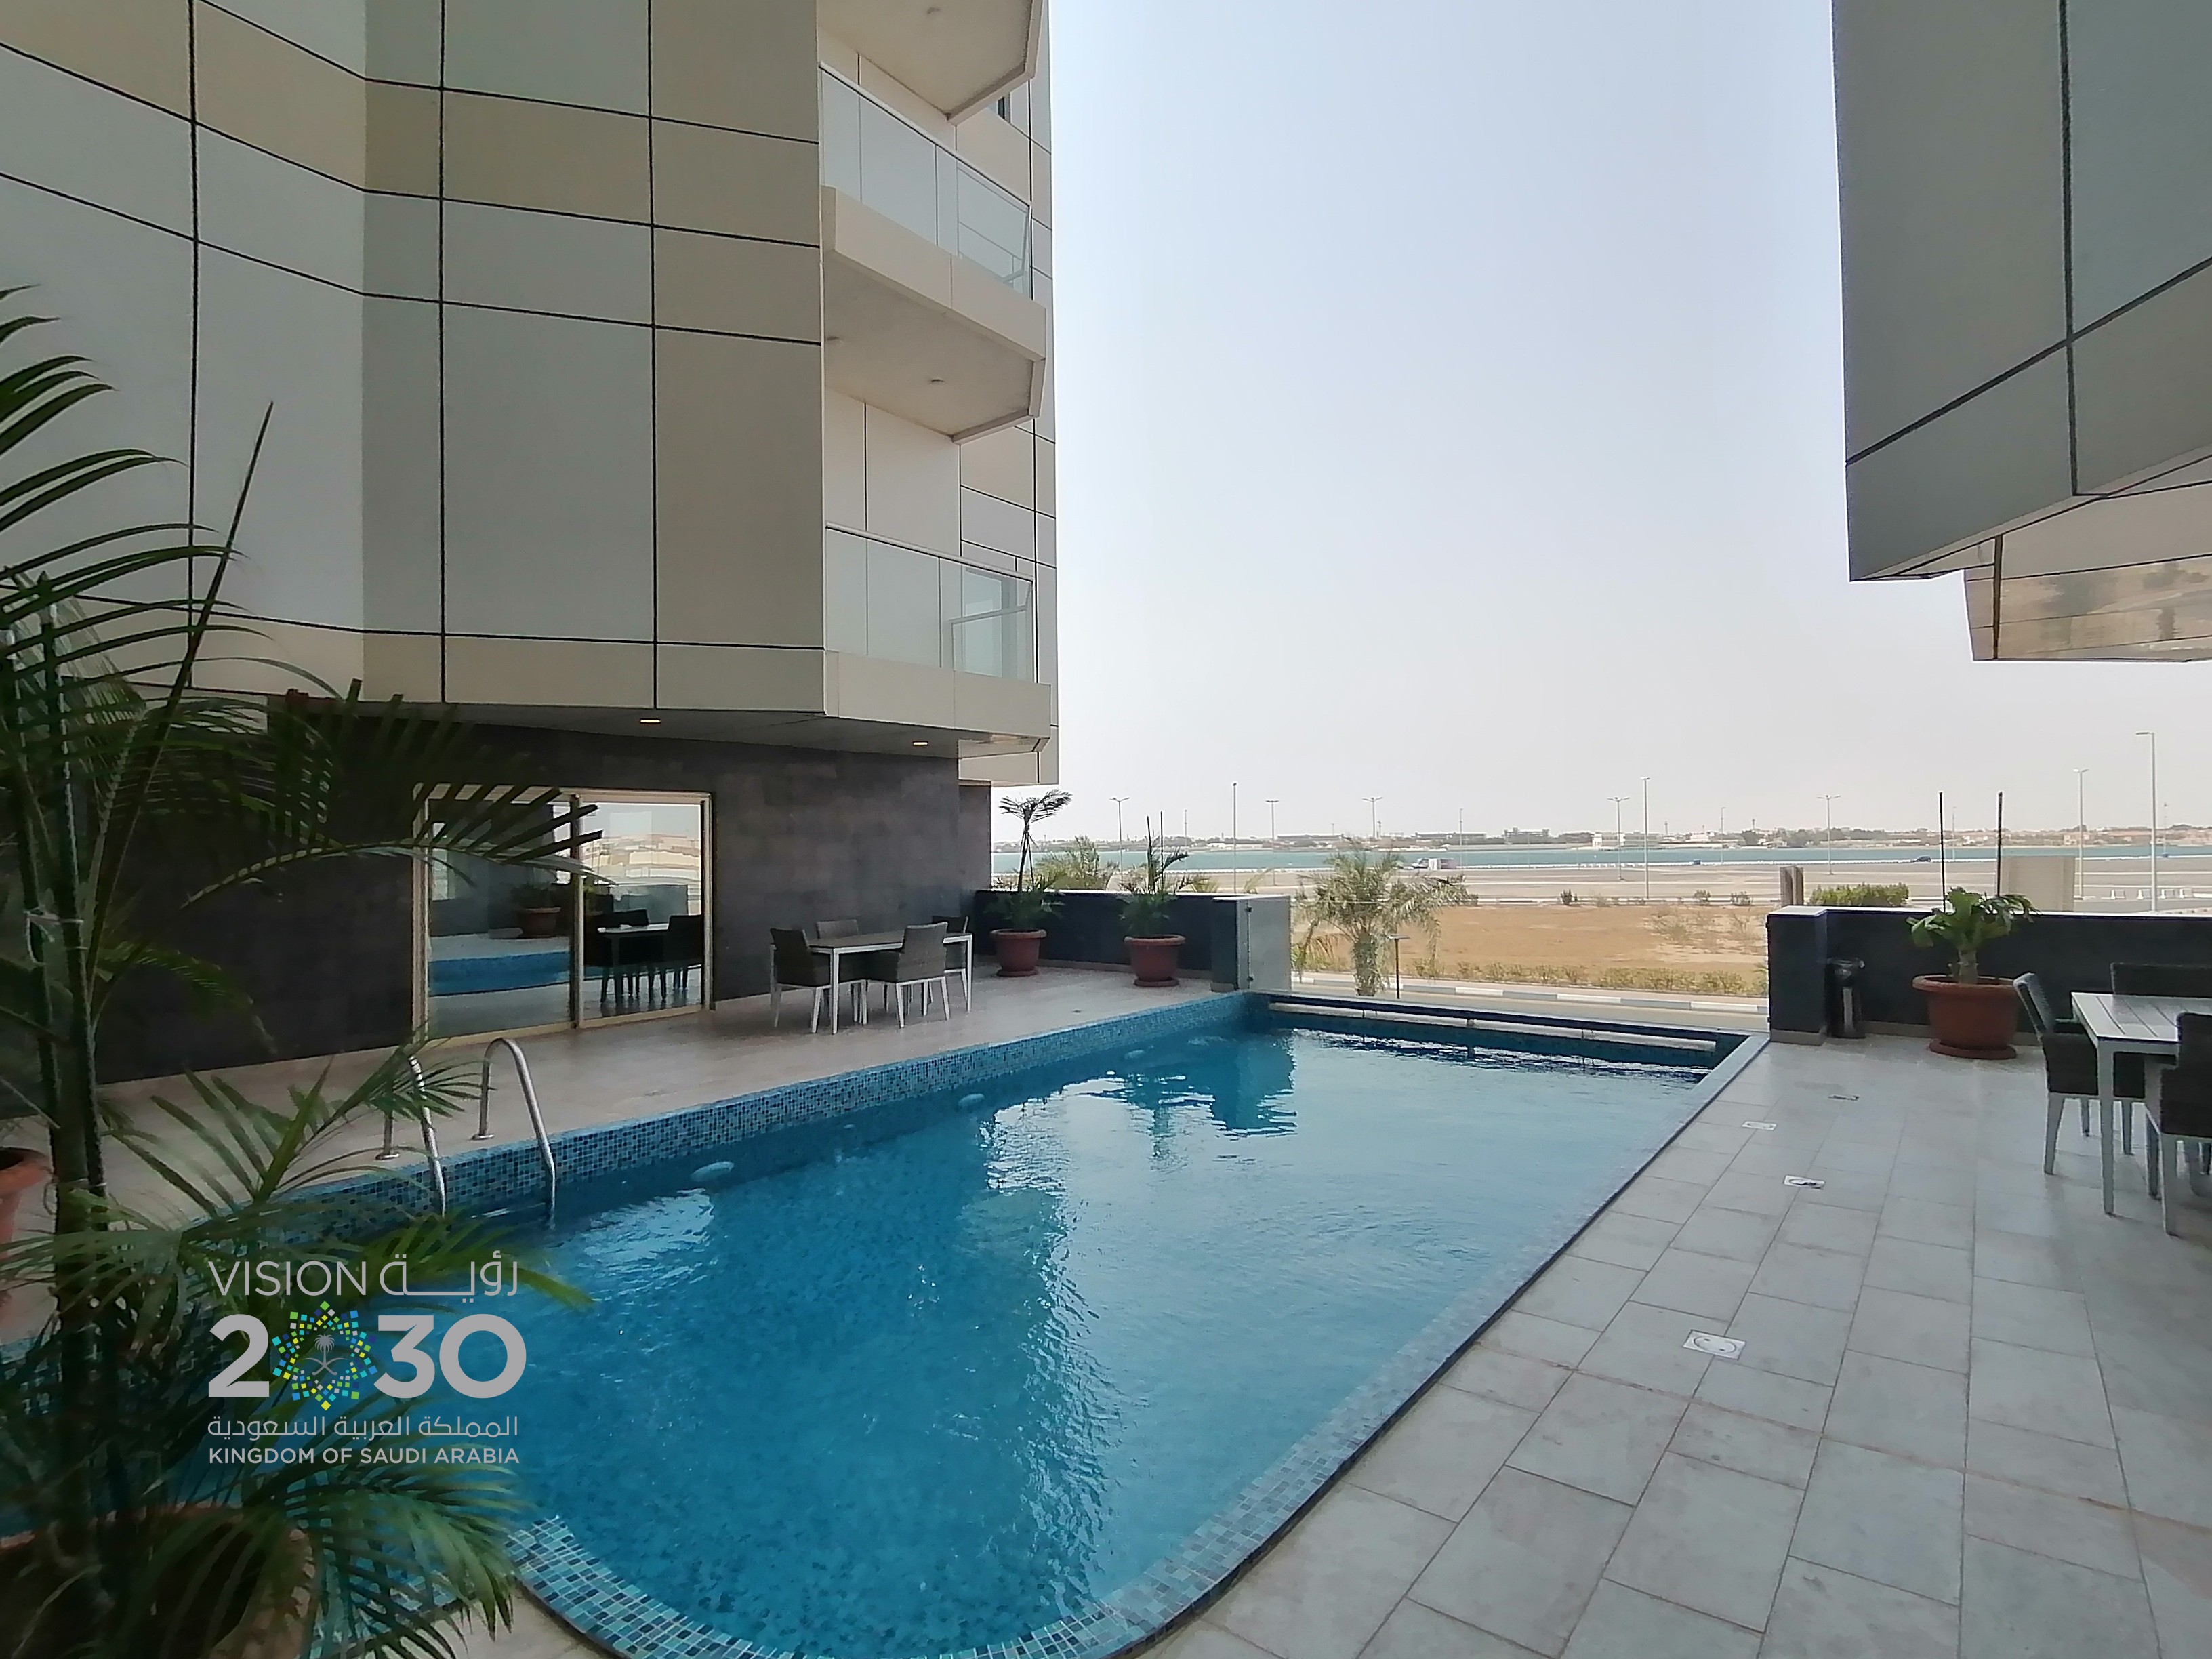 <br /> <b>Notice</b>:  Undefined variable: https://s3-ap-southeast-1.amazonaws.com/mycrm-pro-accounts-v2/property/full/1908/NjZHCTVB3w8bdGOP.jpeg in <b>/home/a2erfg/public_html/livingcompound.com/index.php</b> on line <b>813</b><br />